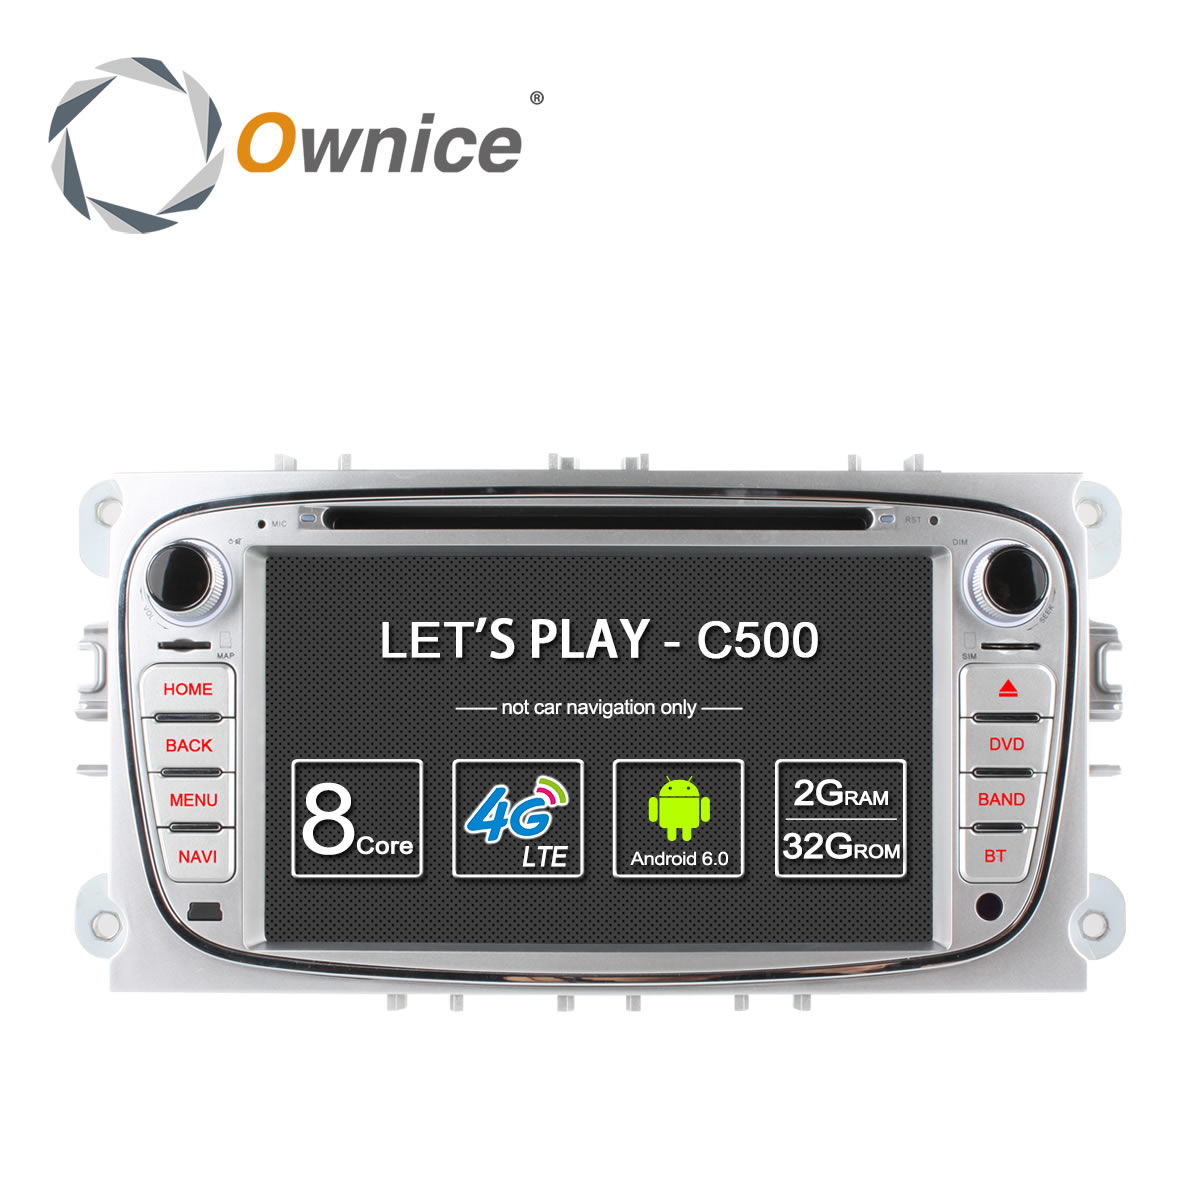 Ownice C500 4G LTE Android 6.0 Octa 8 Core Car DVD Player GPS For FORD Mondeo S-MAX Connect FOCUS 2 2008 2009 2010 2011 32G ROM ownice c500 android 6 0 octa 8 core 4g sim lte car dvd player for great wall hover h3 h5 with gps navigation radio 32g rom